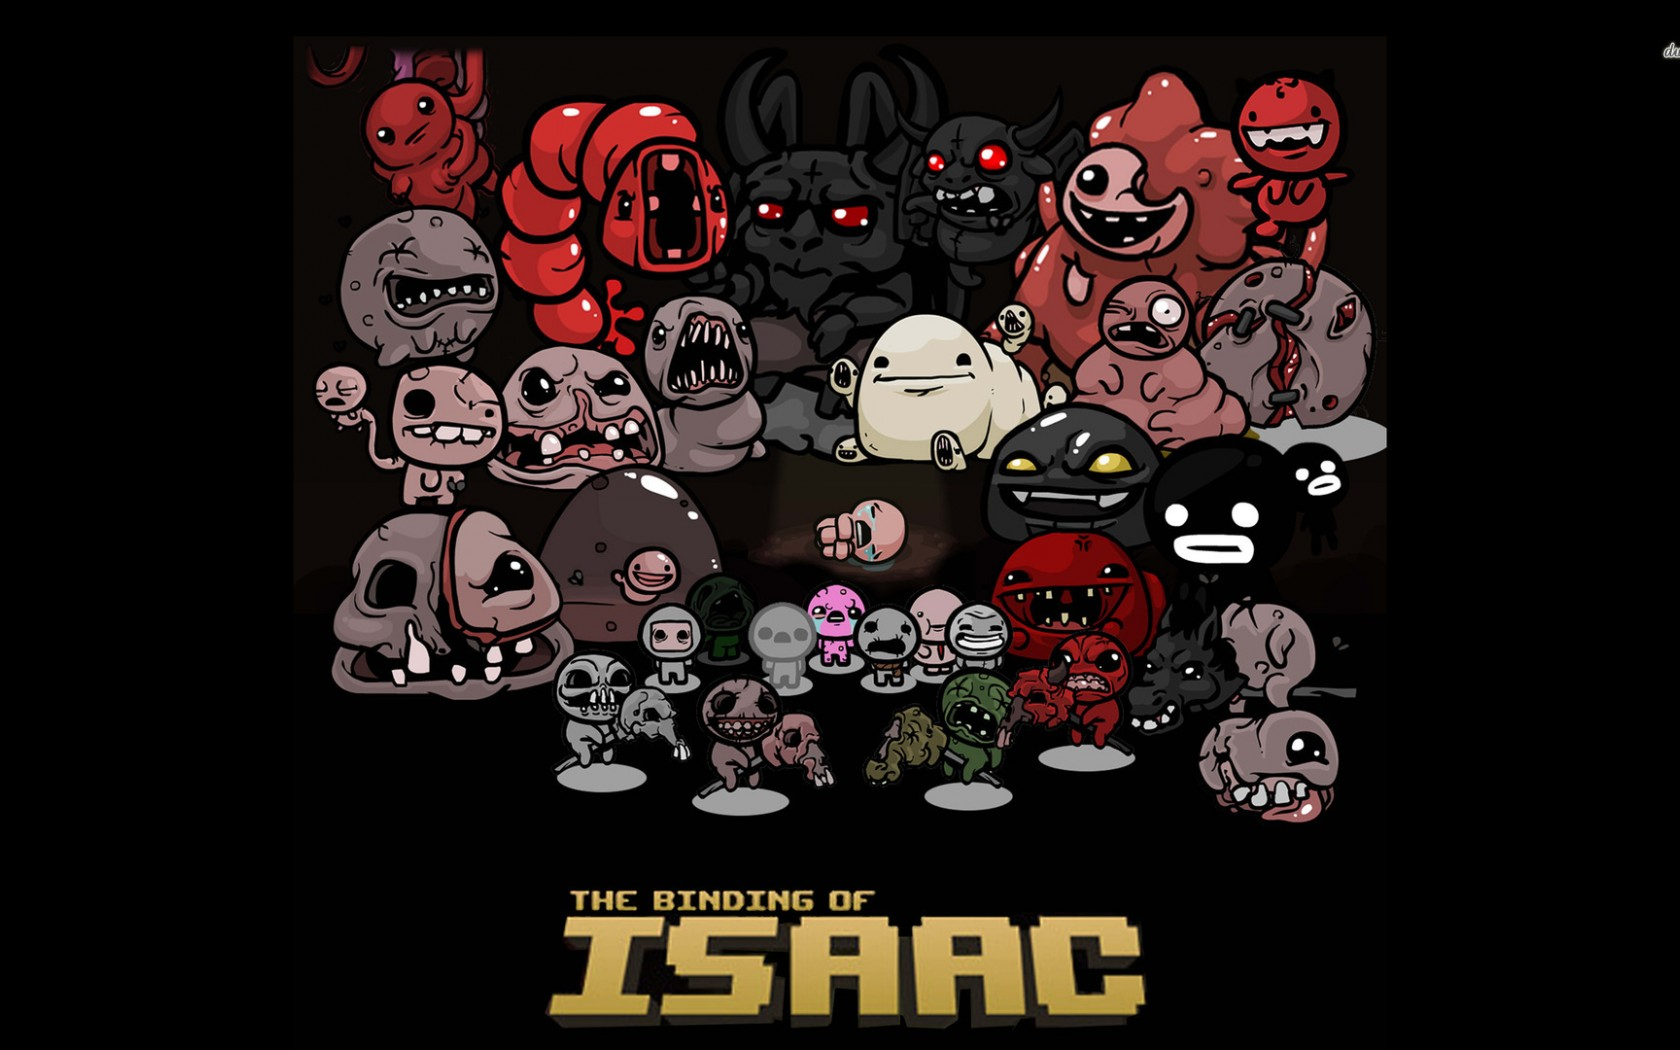 The Binding Of Isaac Indie Game Wallpaper Hd Games 4k